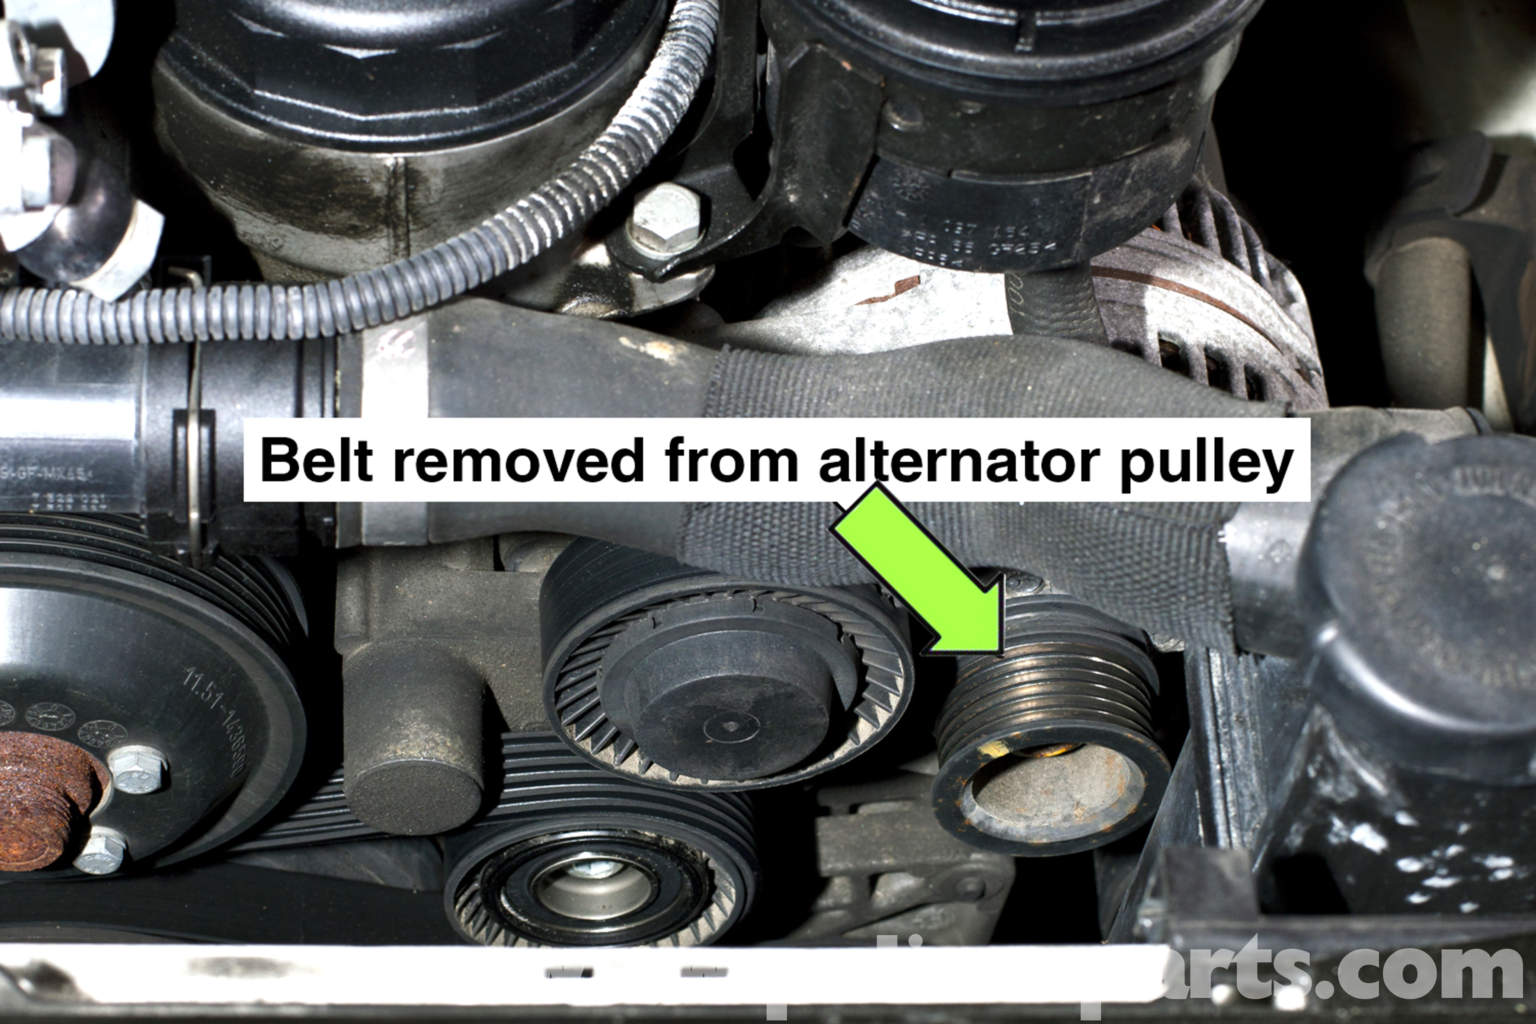 Bmw E46 Power Steering Pump Replacement 325i 2001 2005 Ford Taurus Engine Diagram Intake Large Image